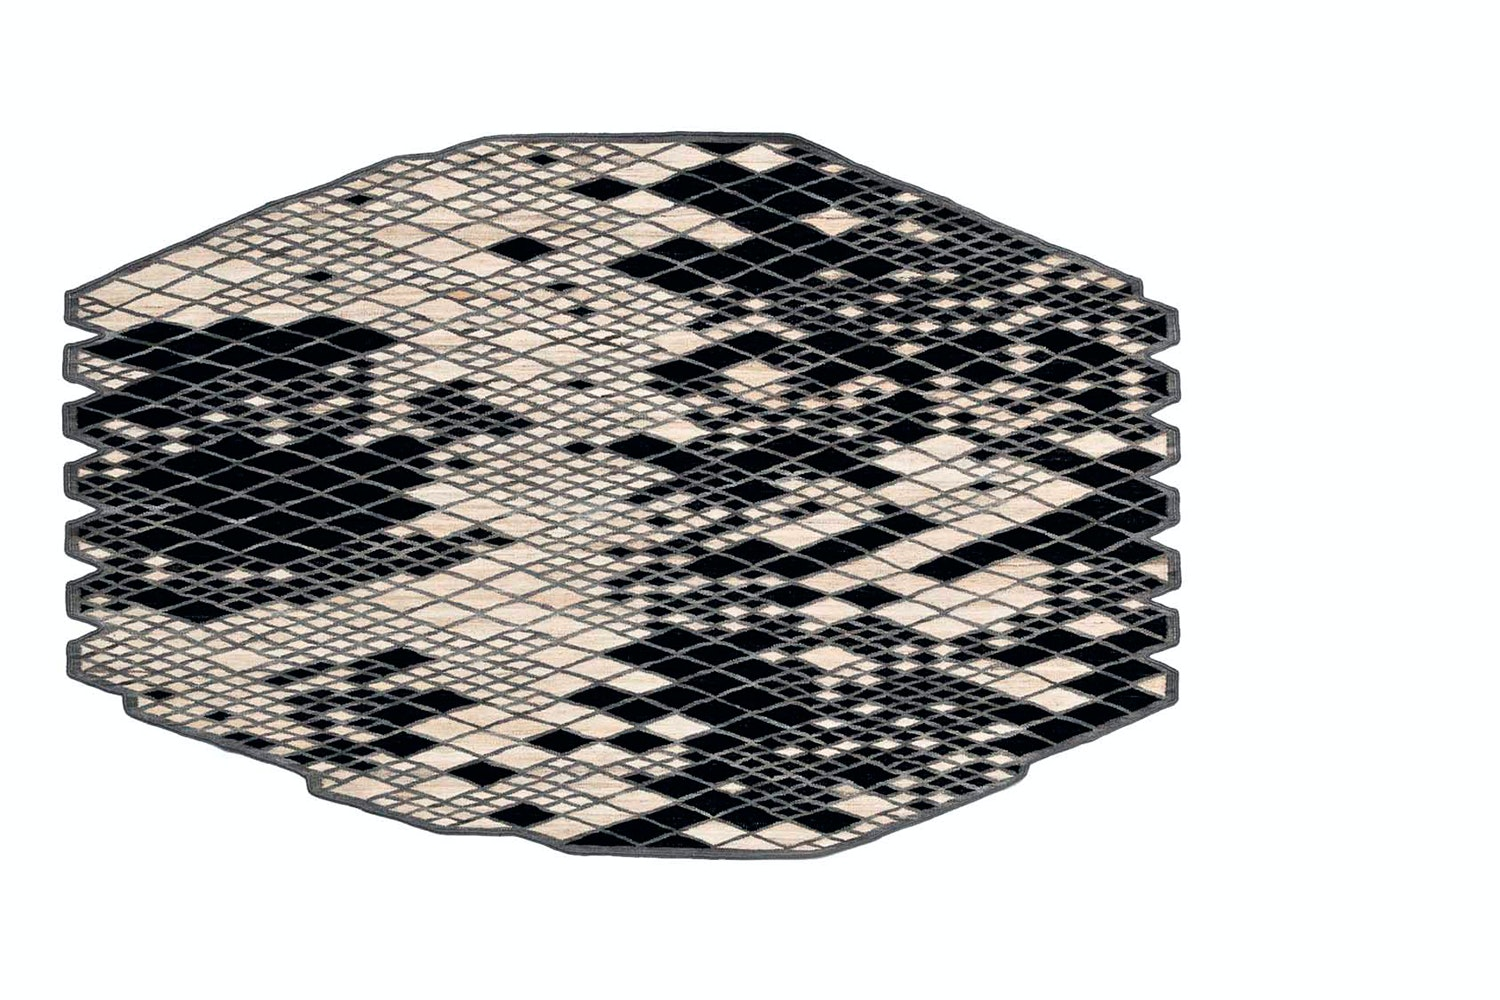 Losanges II Rug 165x245cm by Ronan & Erwan Bouroullec for Nanimarquina